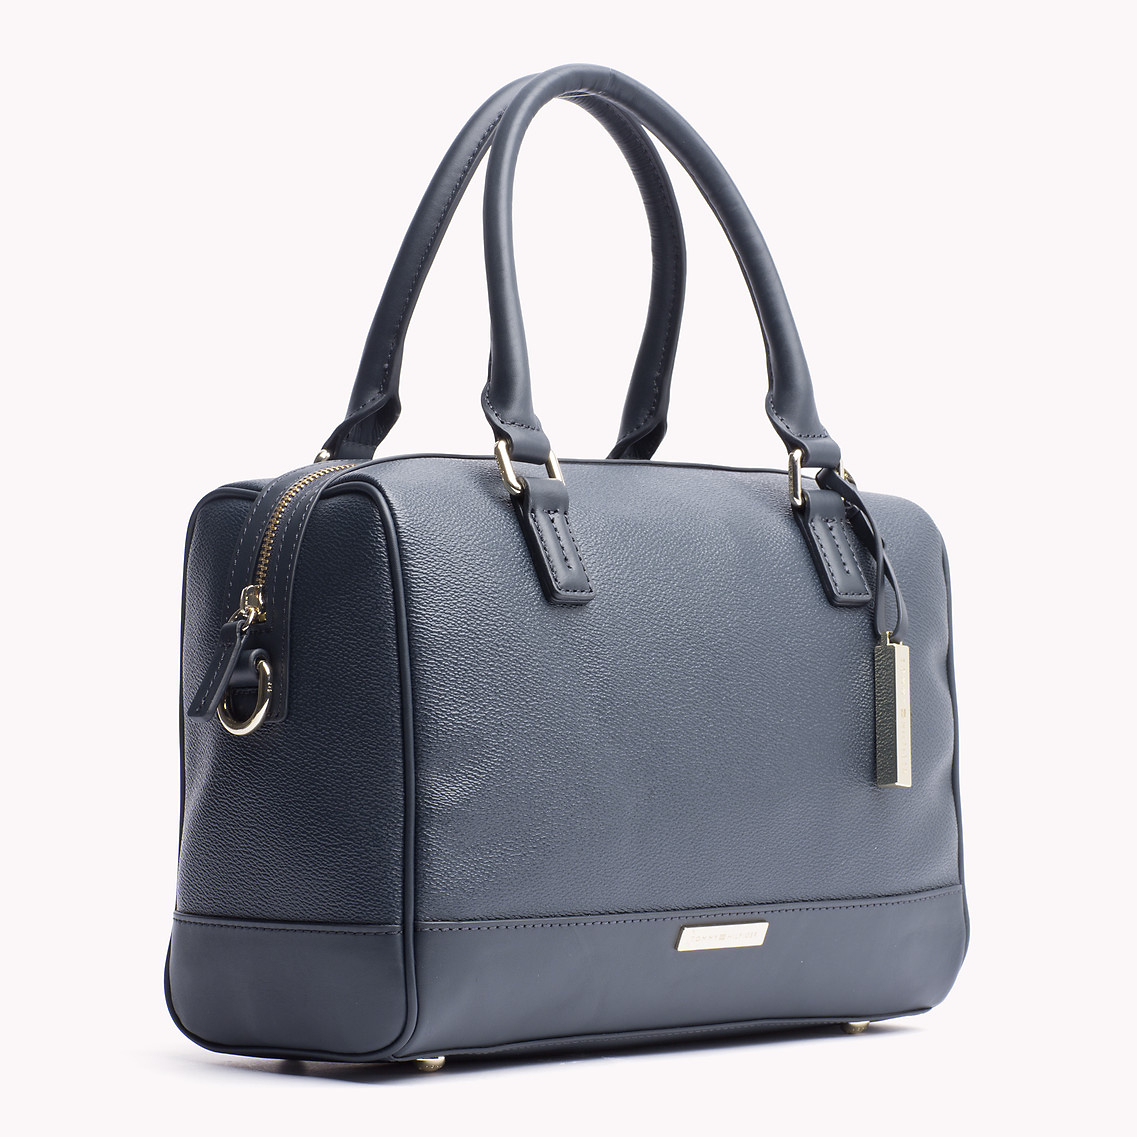 8805df555e Tommy Hilfiger Daisy Duffle Bag in Blue - Lyst